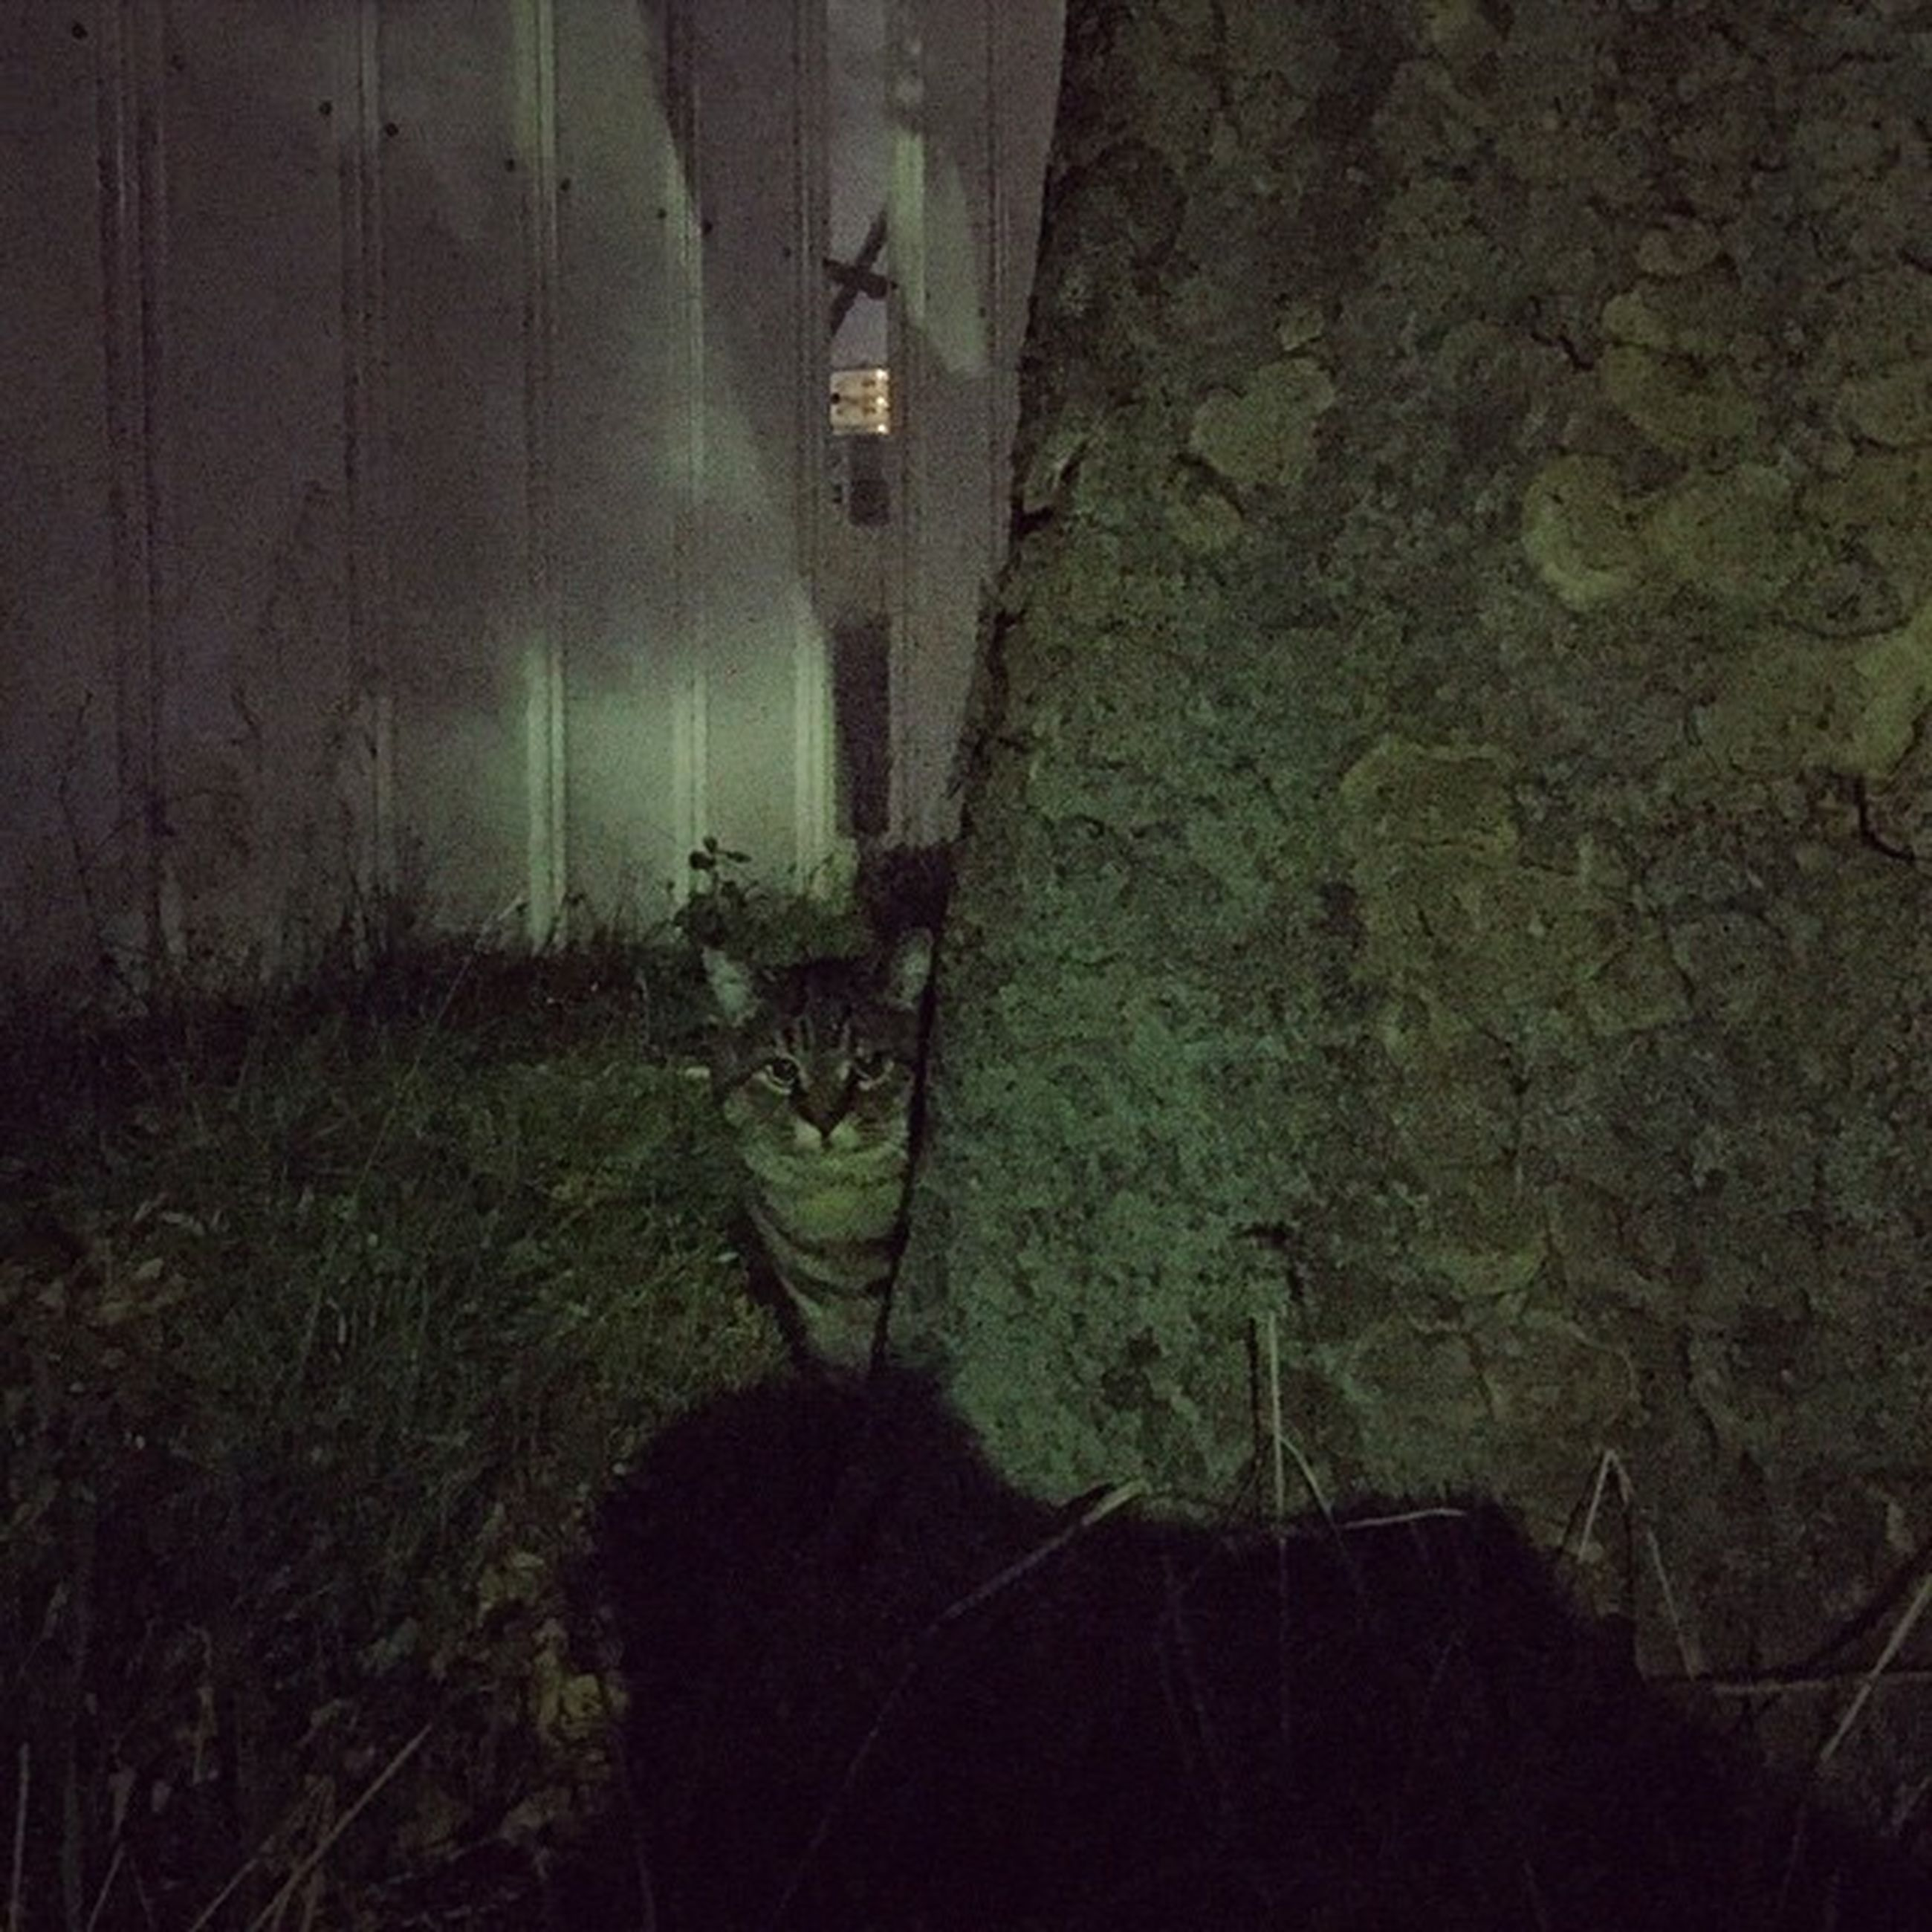 plant, wall - building feature, growth, dark, no people, built structure, shadow, sunlight, abandoned, day, outdoors, nature, grass, architecture, house, wall, branch, high angle view